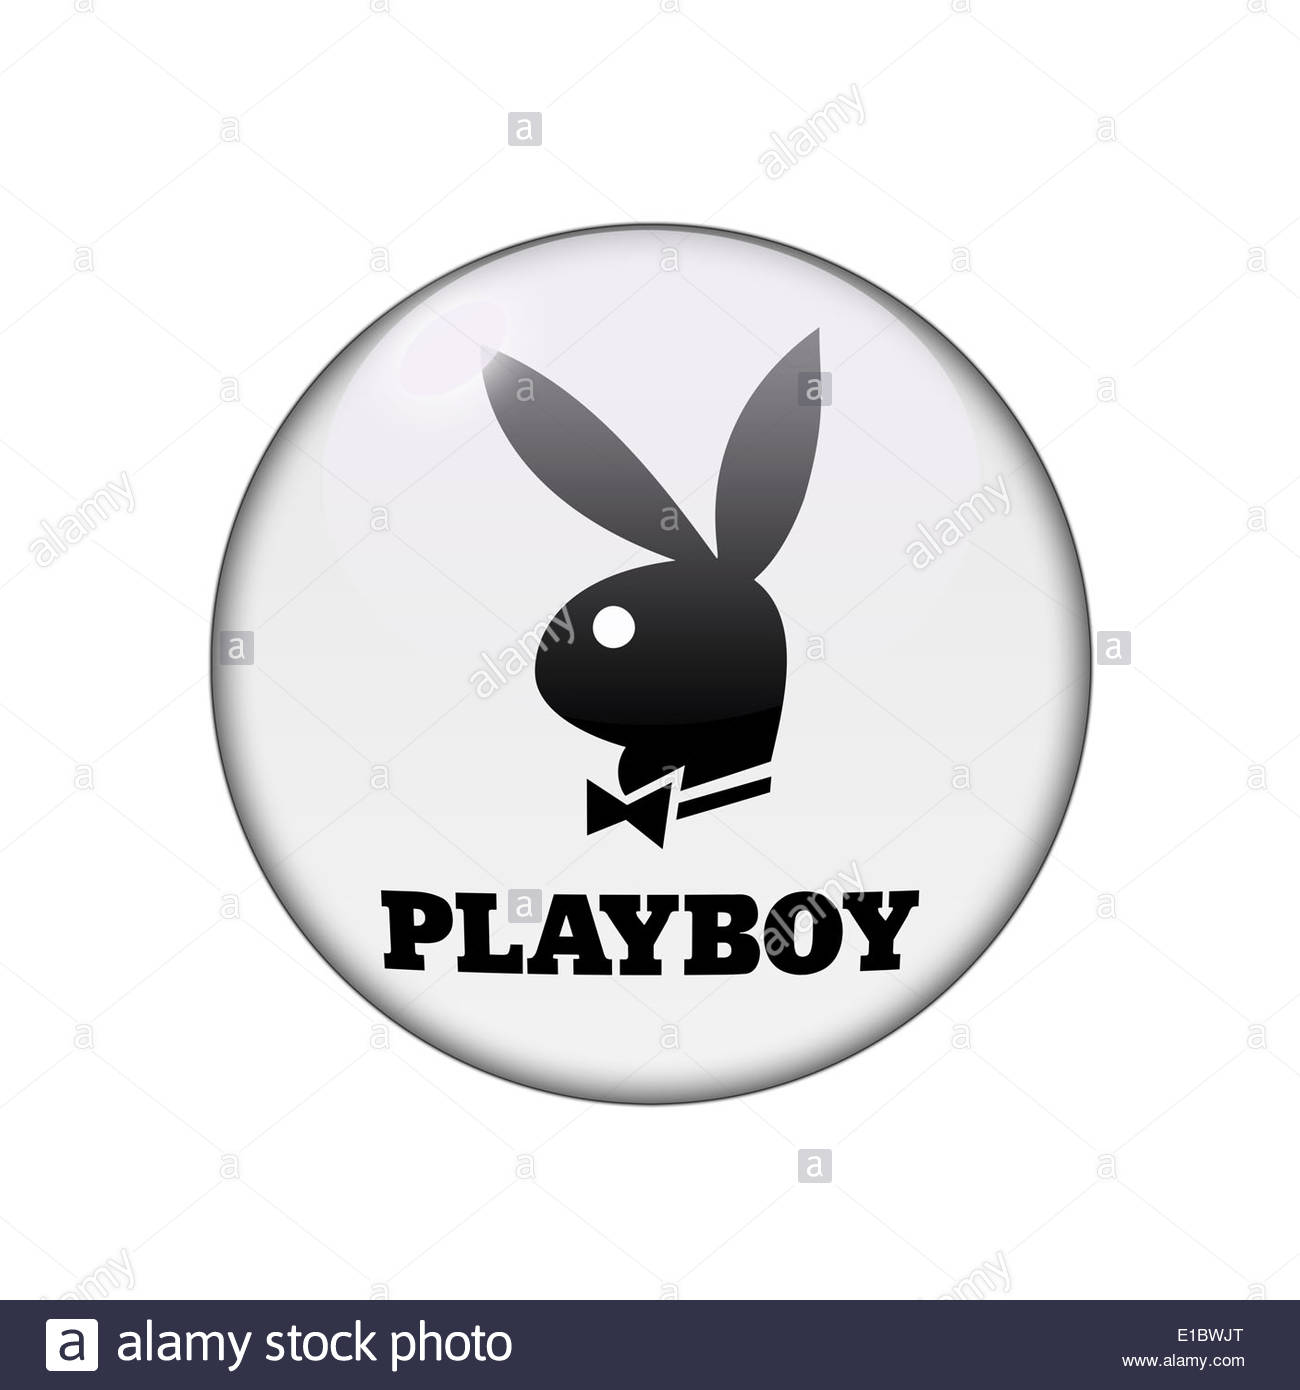 Playboy icon logo isolated app button - Stock Image